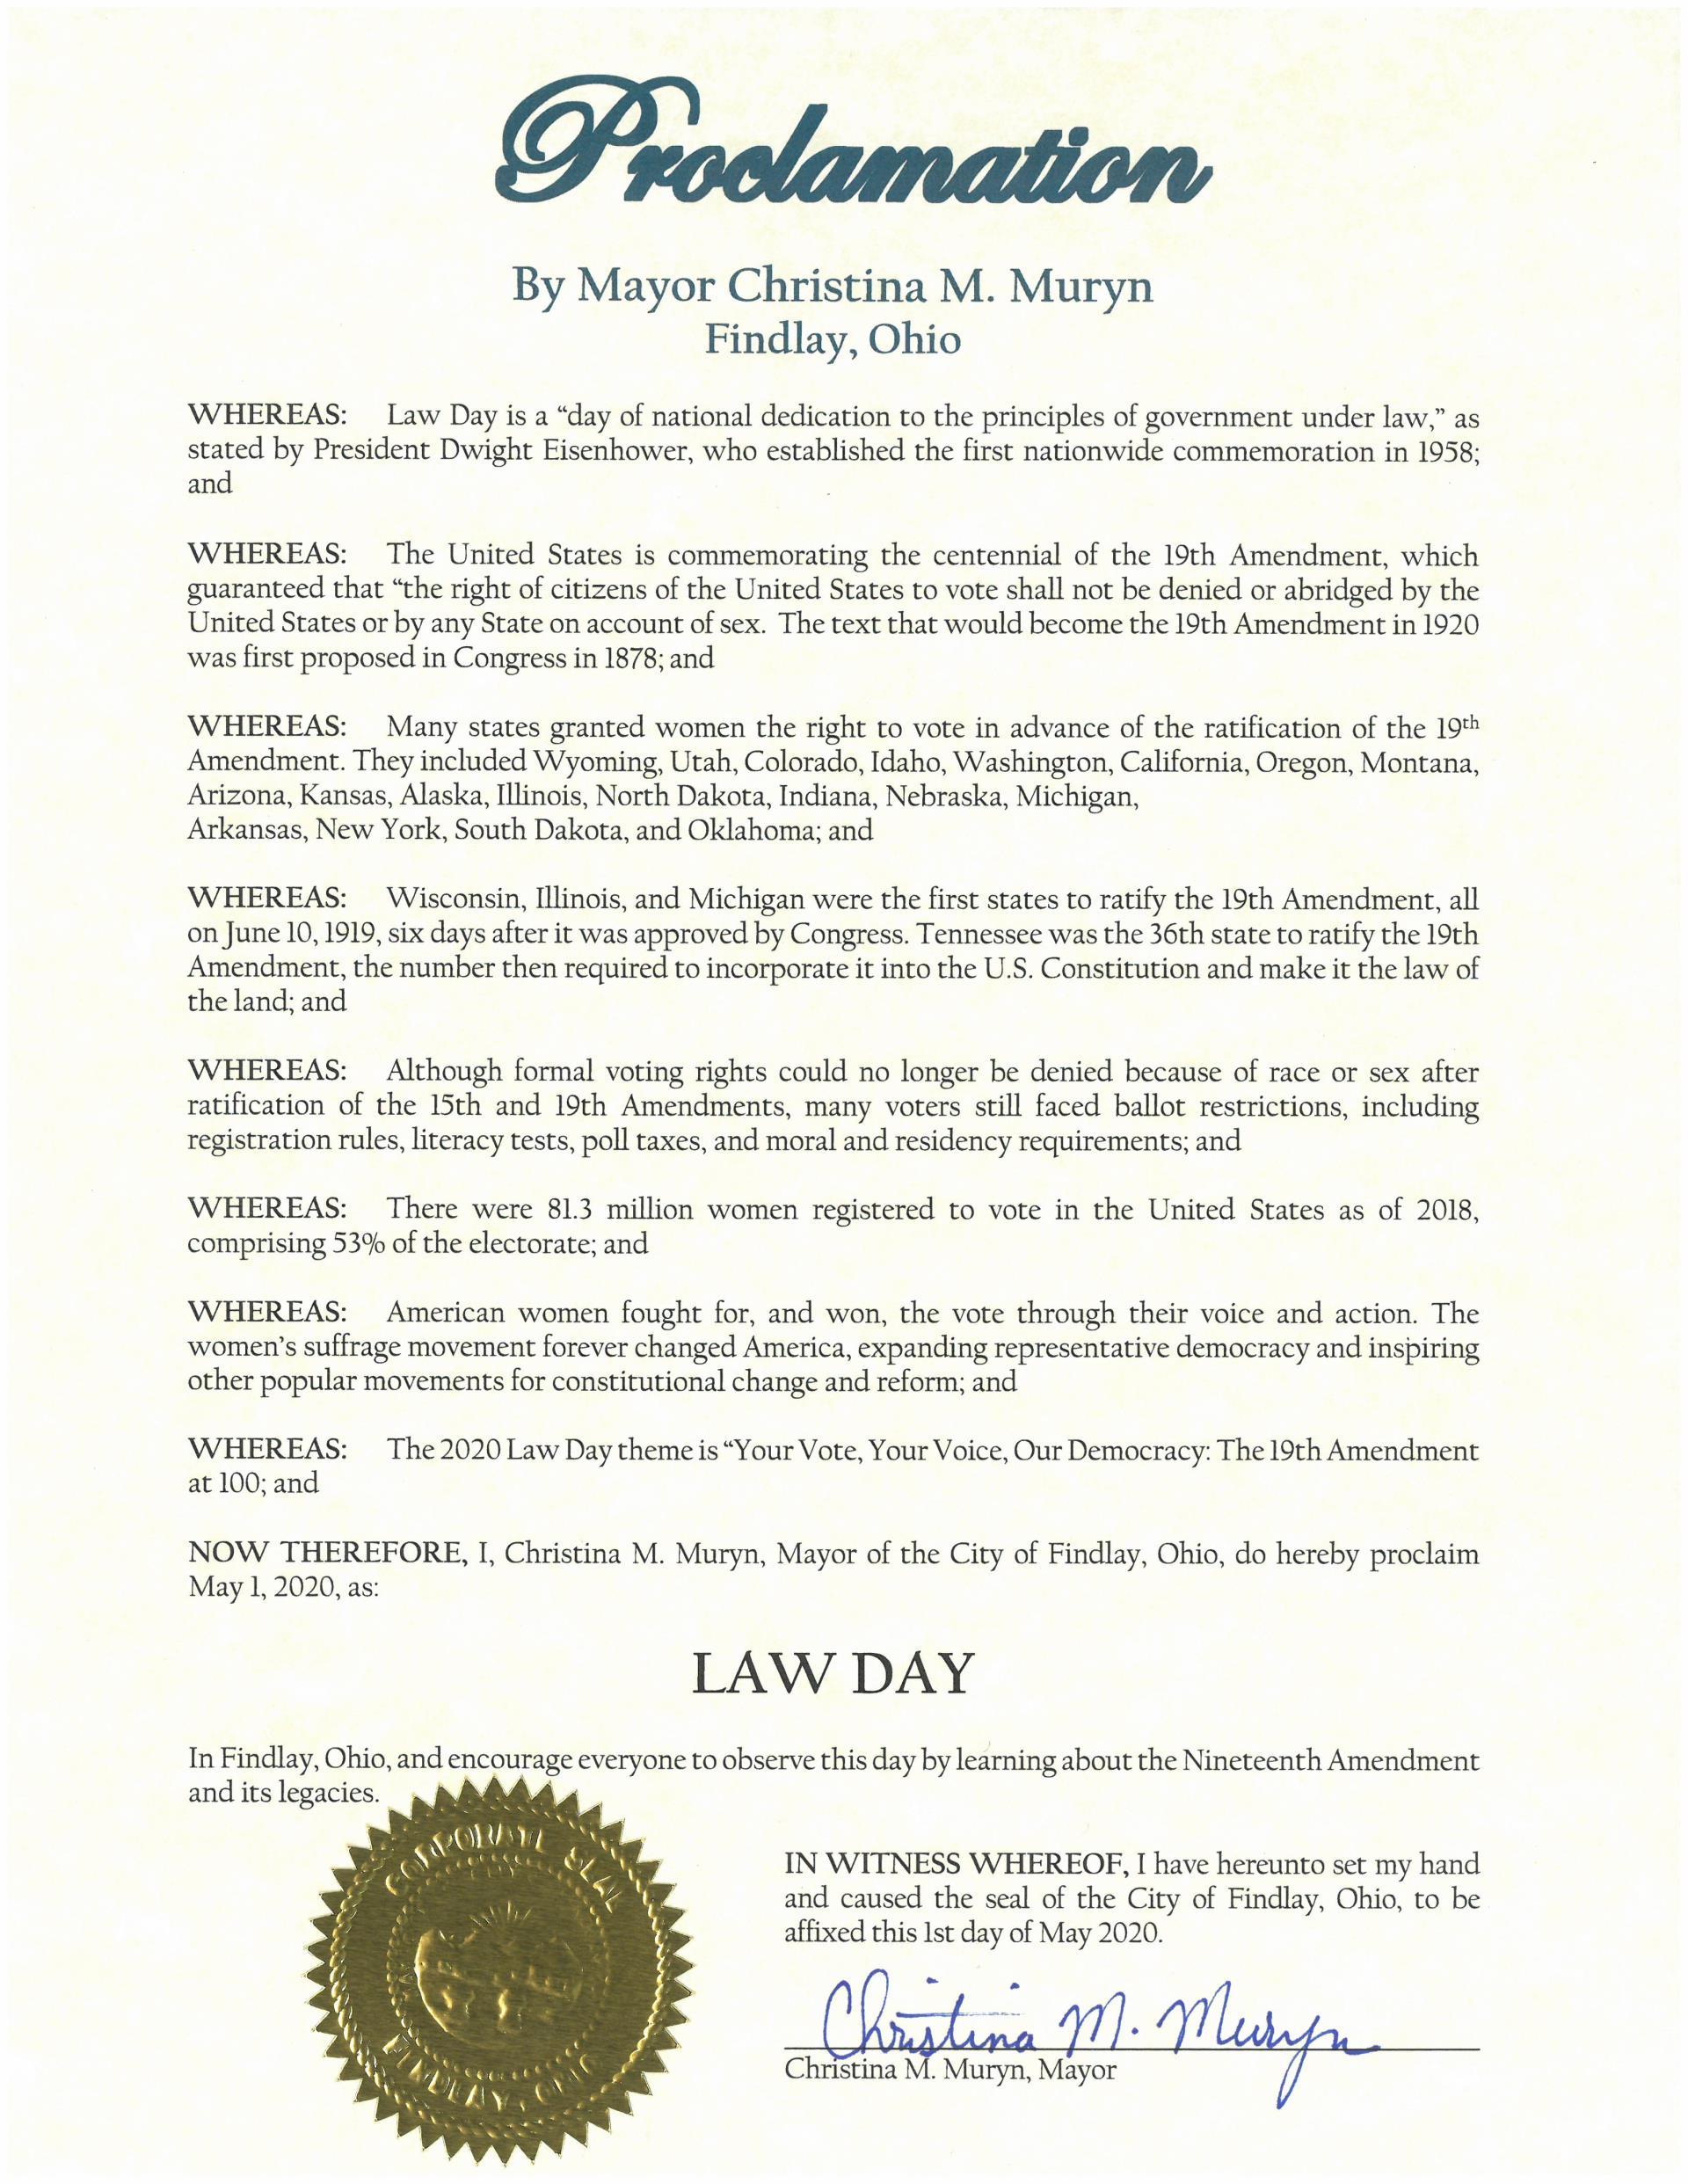 2020.05.01.Law Day Proclamation